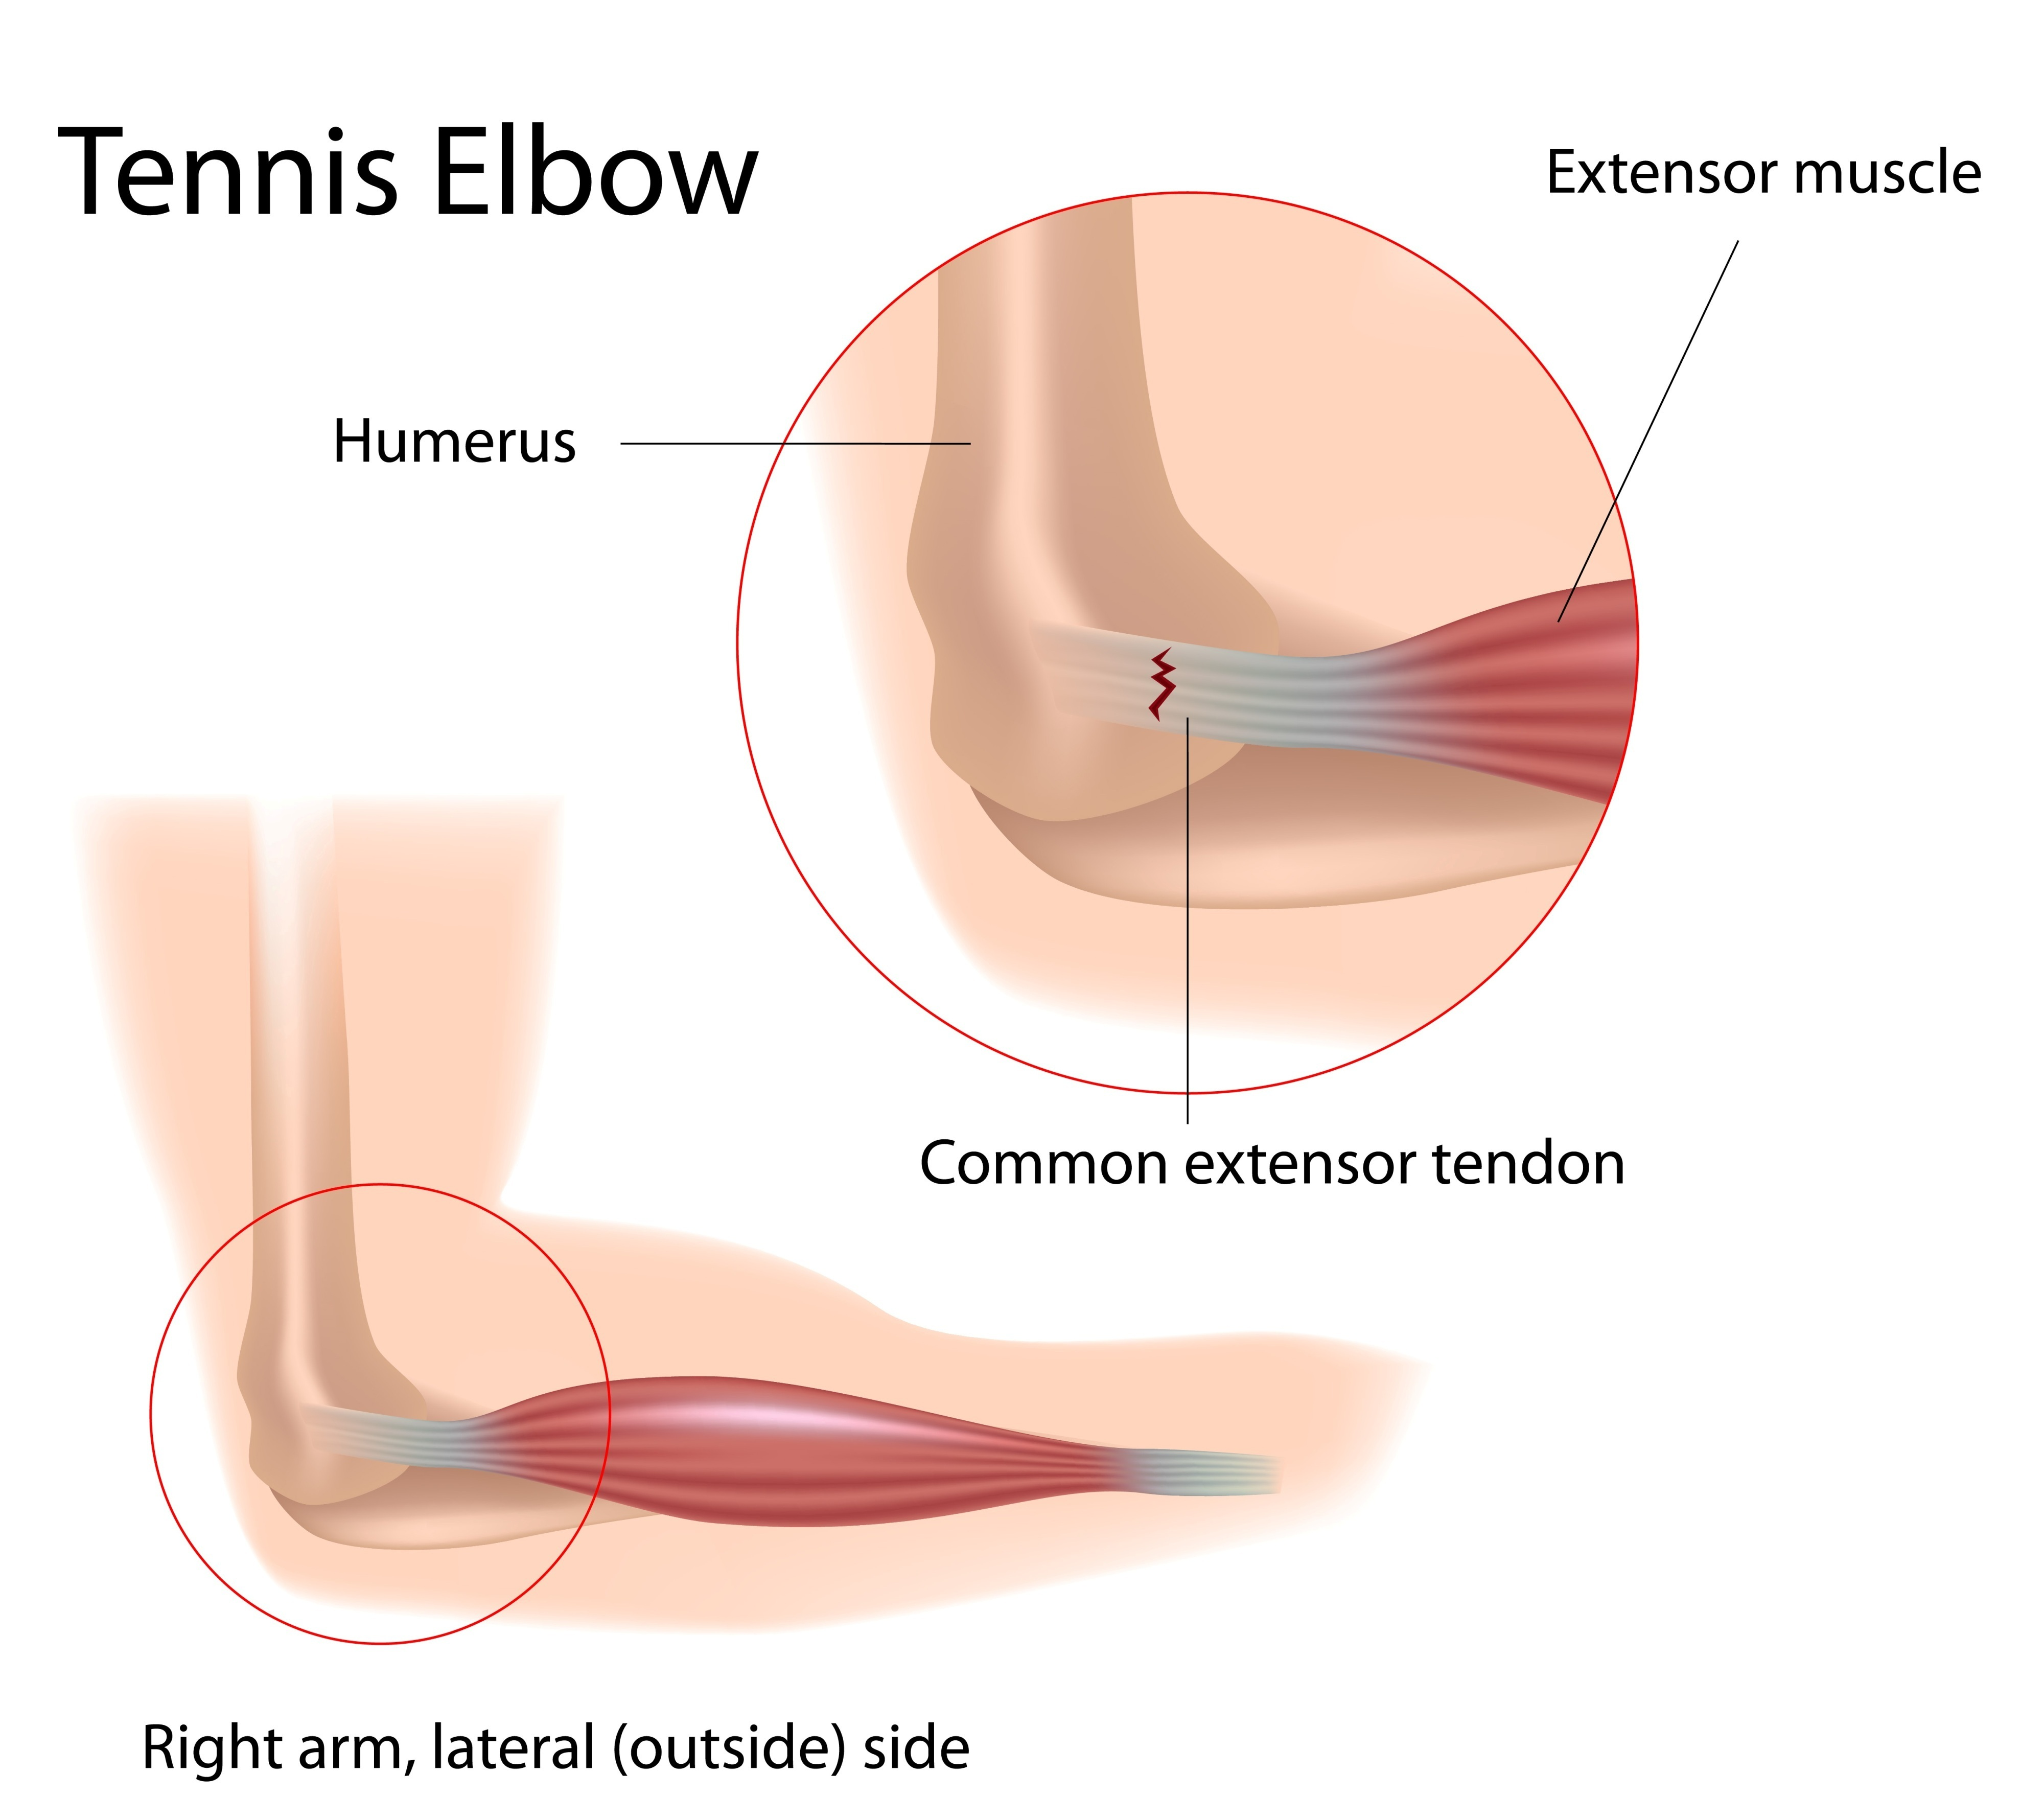 Tennis Elbow on muscle pain location diagram